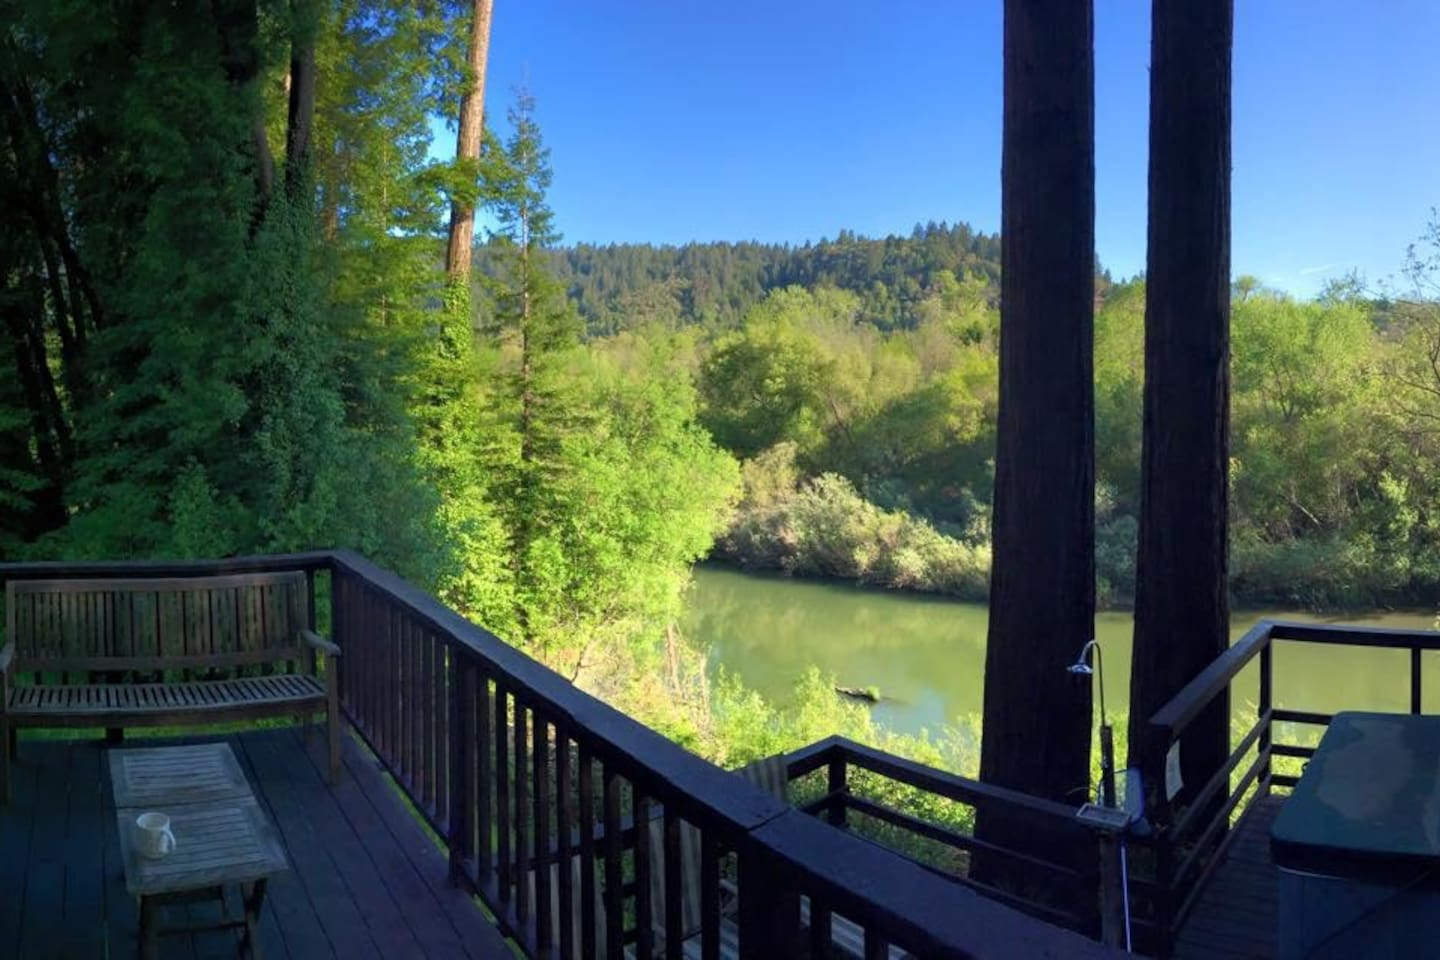 Pano view from rear deck